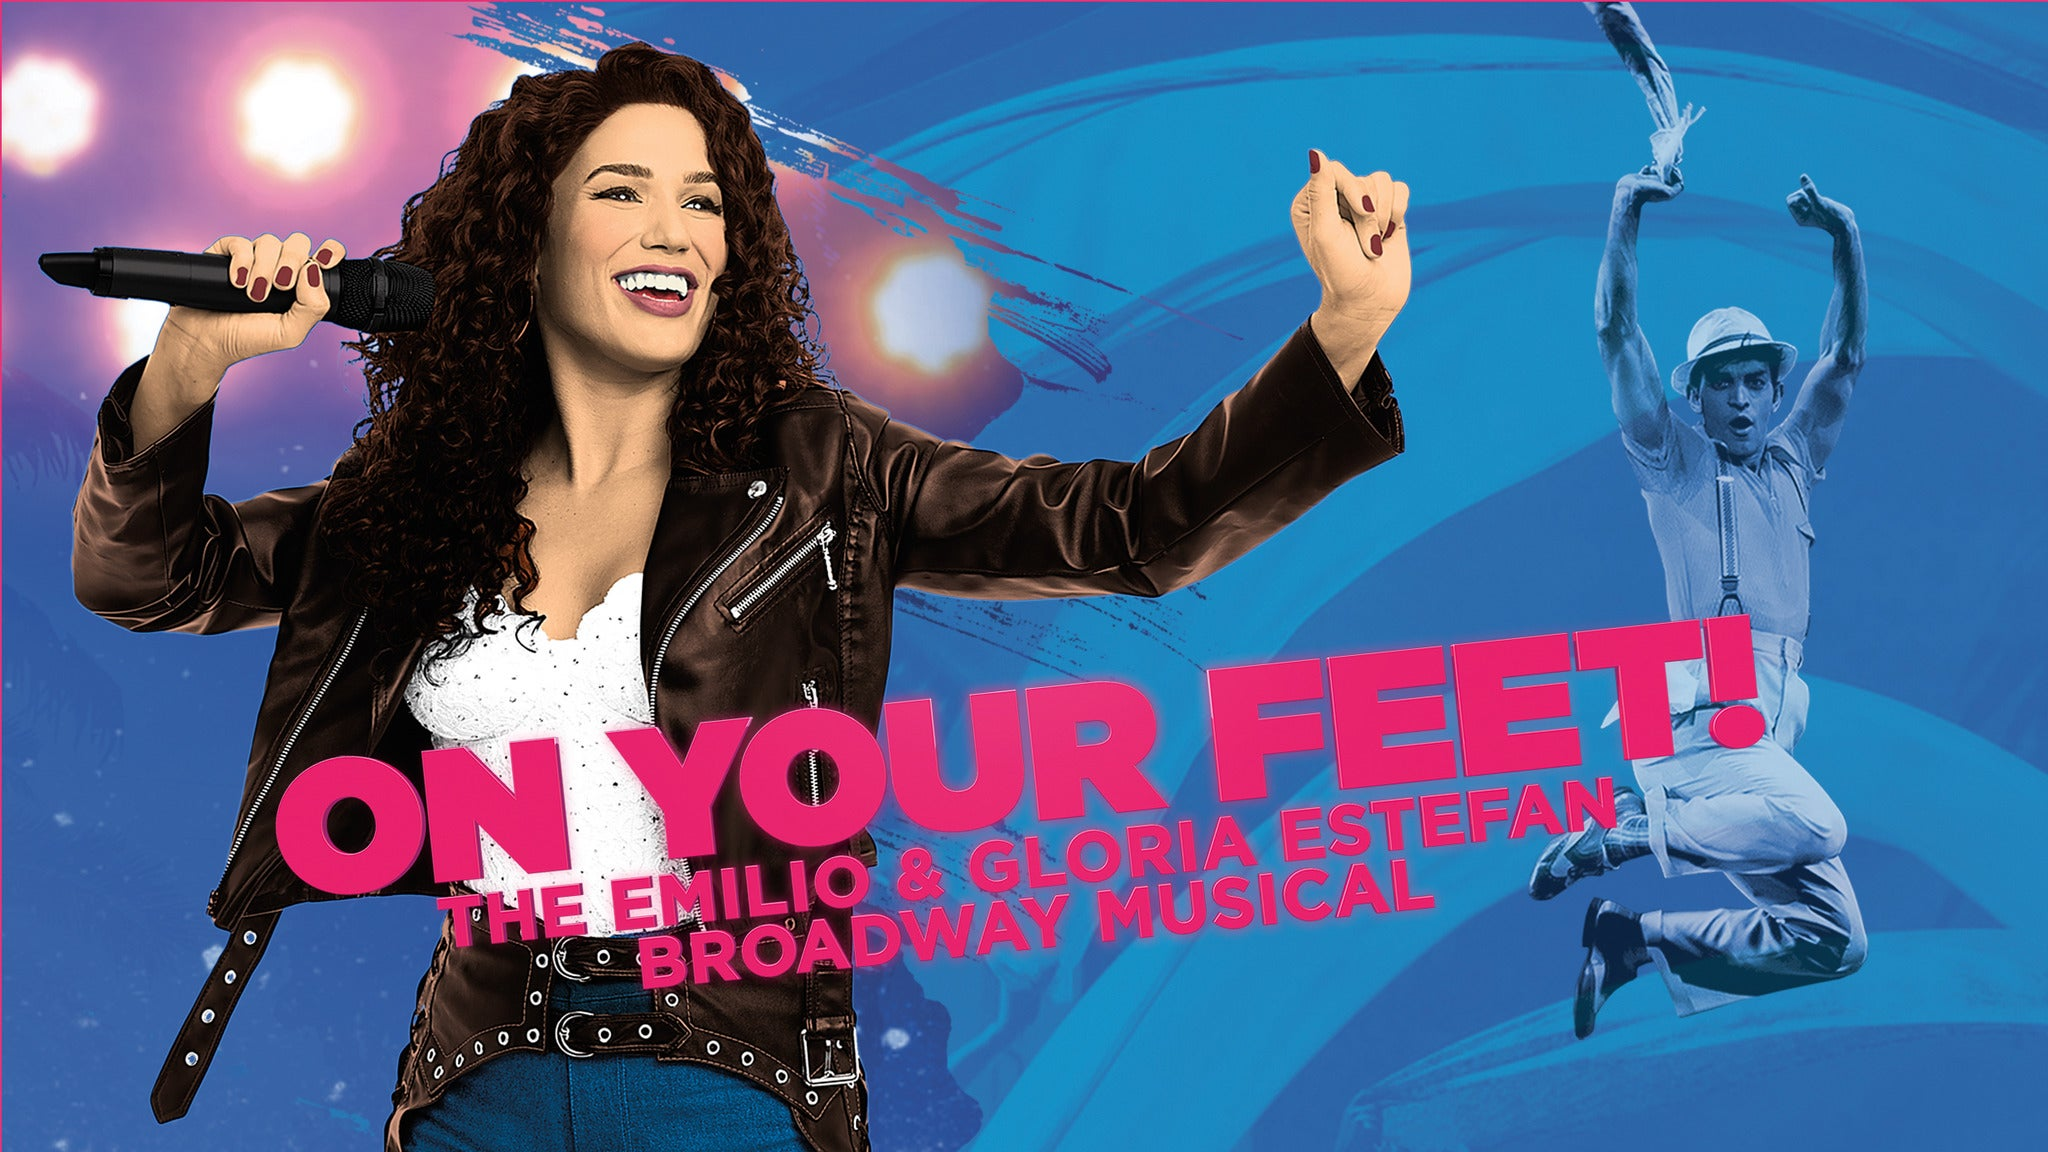 On Your Feet at Van Wezel Performing Arts Center